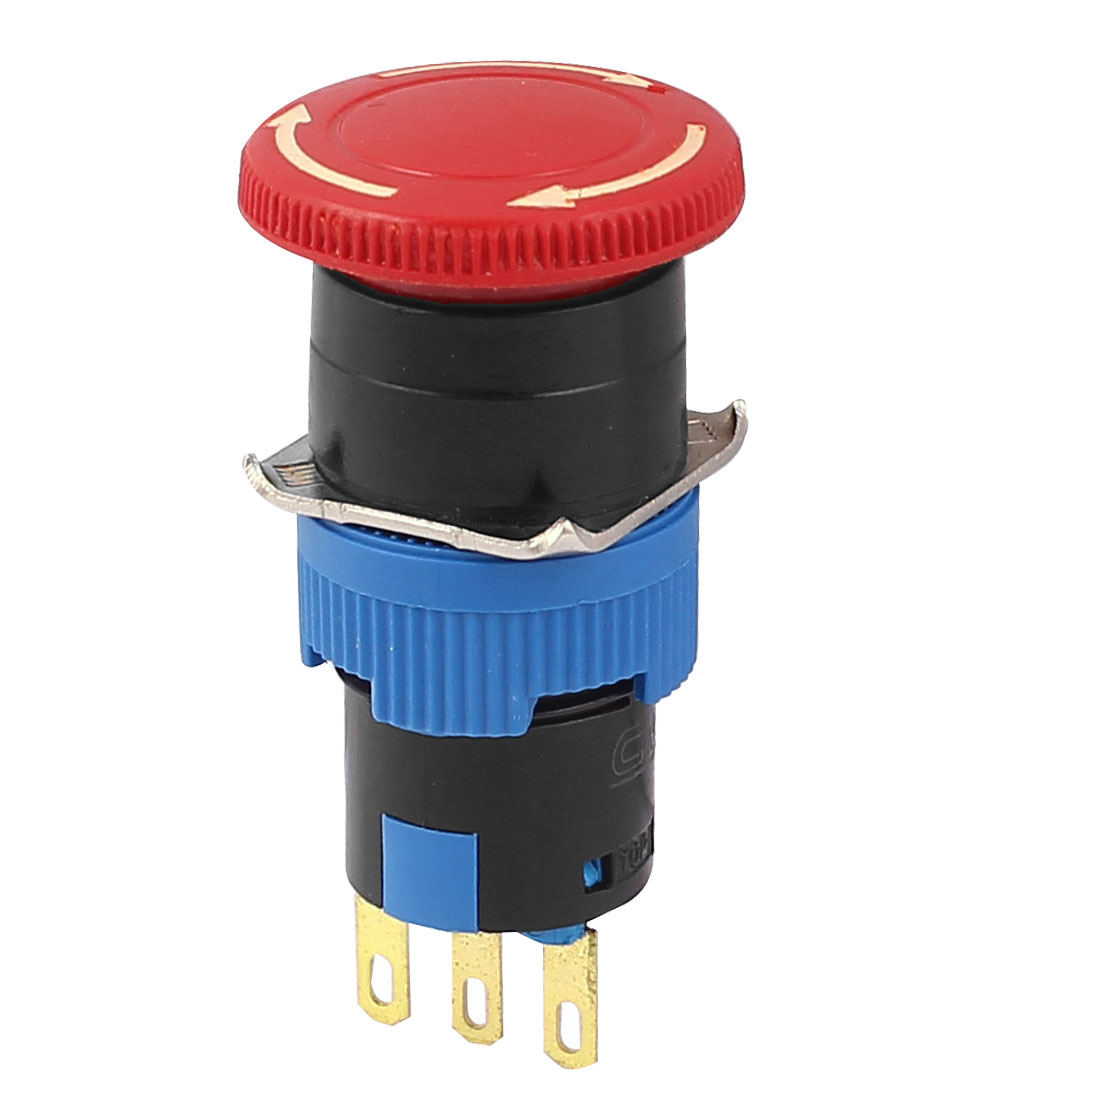 15.5mm 3 Terminals SPDT NO/NC Red Mushroom Head Emergency Stop Push Button Switch